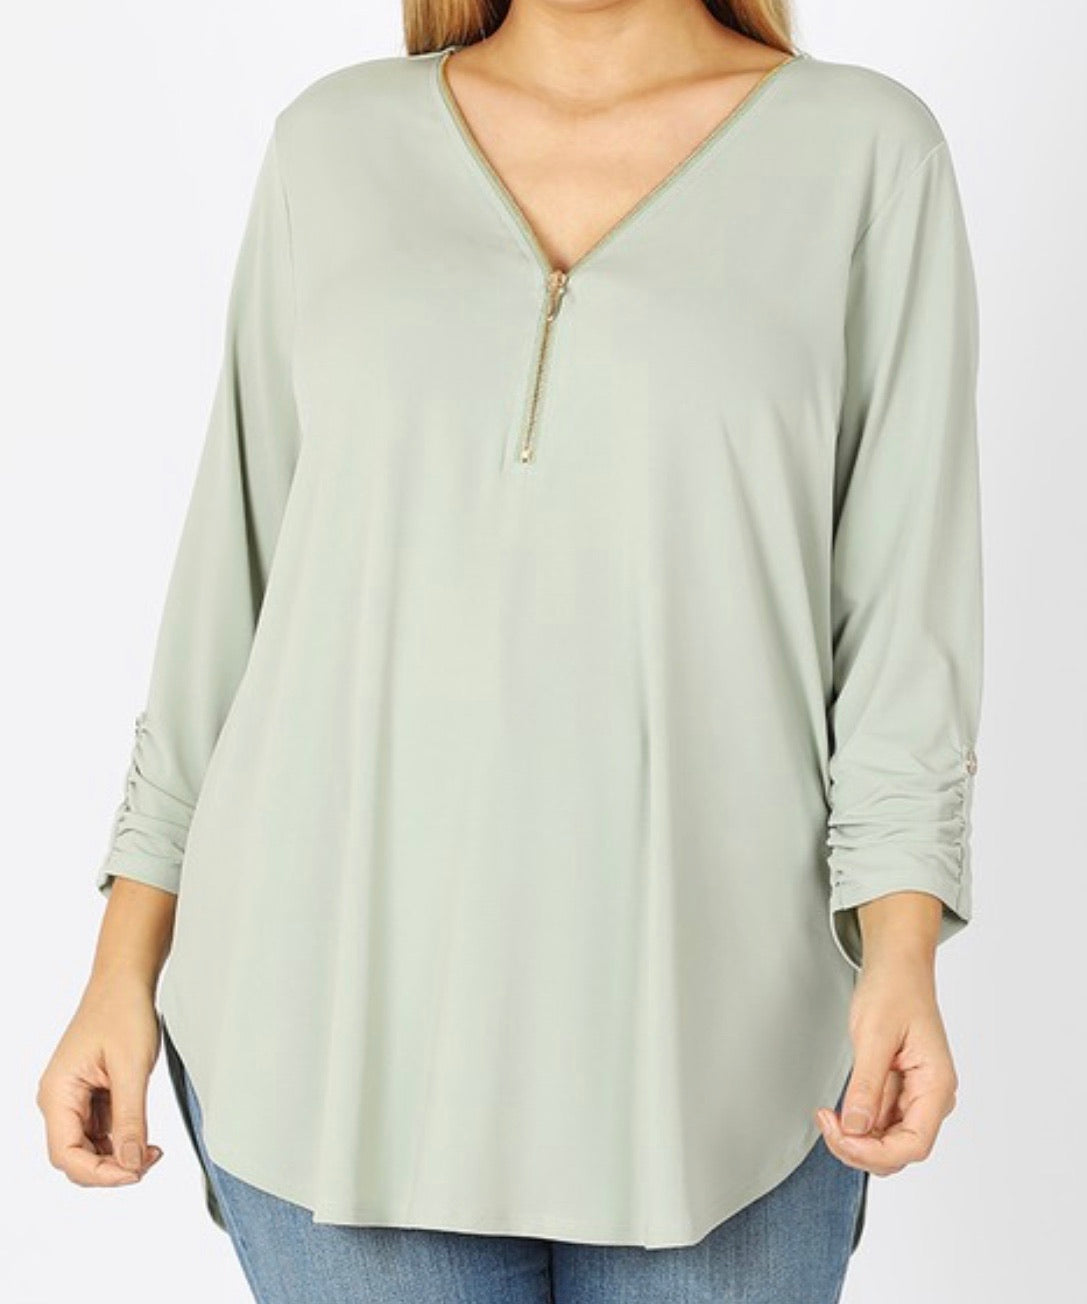 Penny 3/4 Sleeve Top